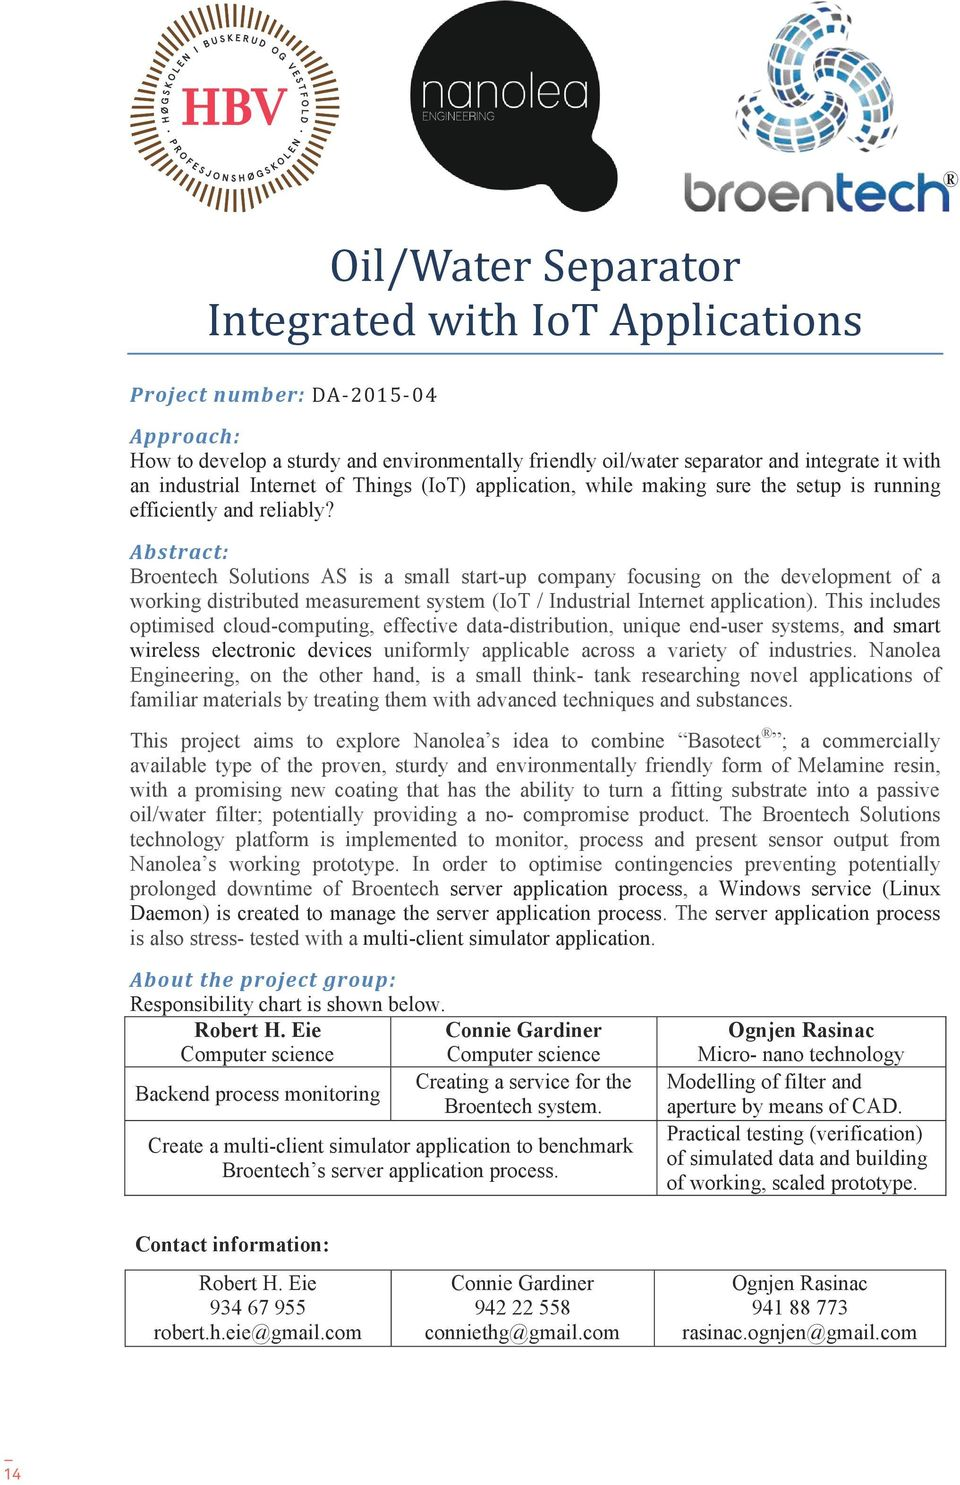 Abstract: Broentech Solutions AS is a small start-up company focusing on the development of a working distributed measurement system (IoT / Industrial Internet application).